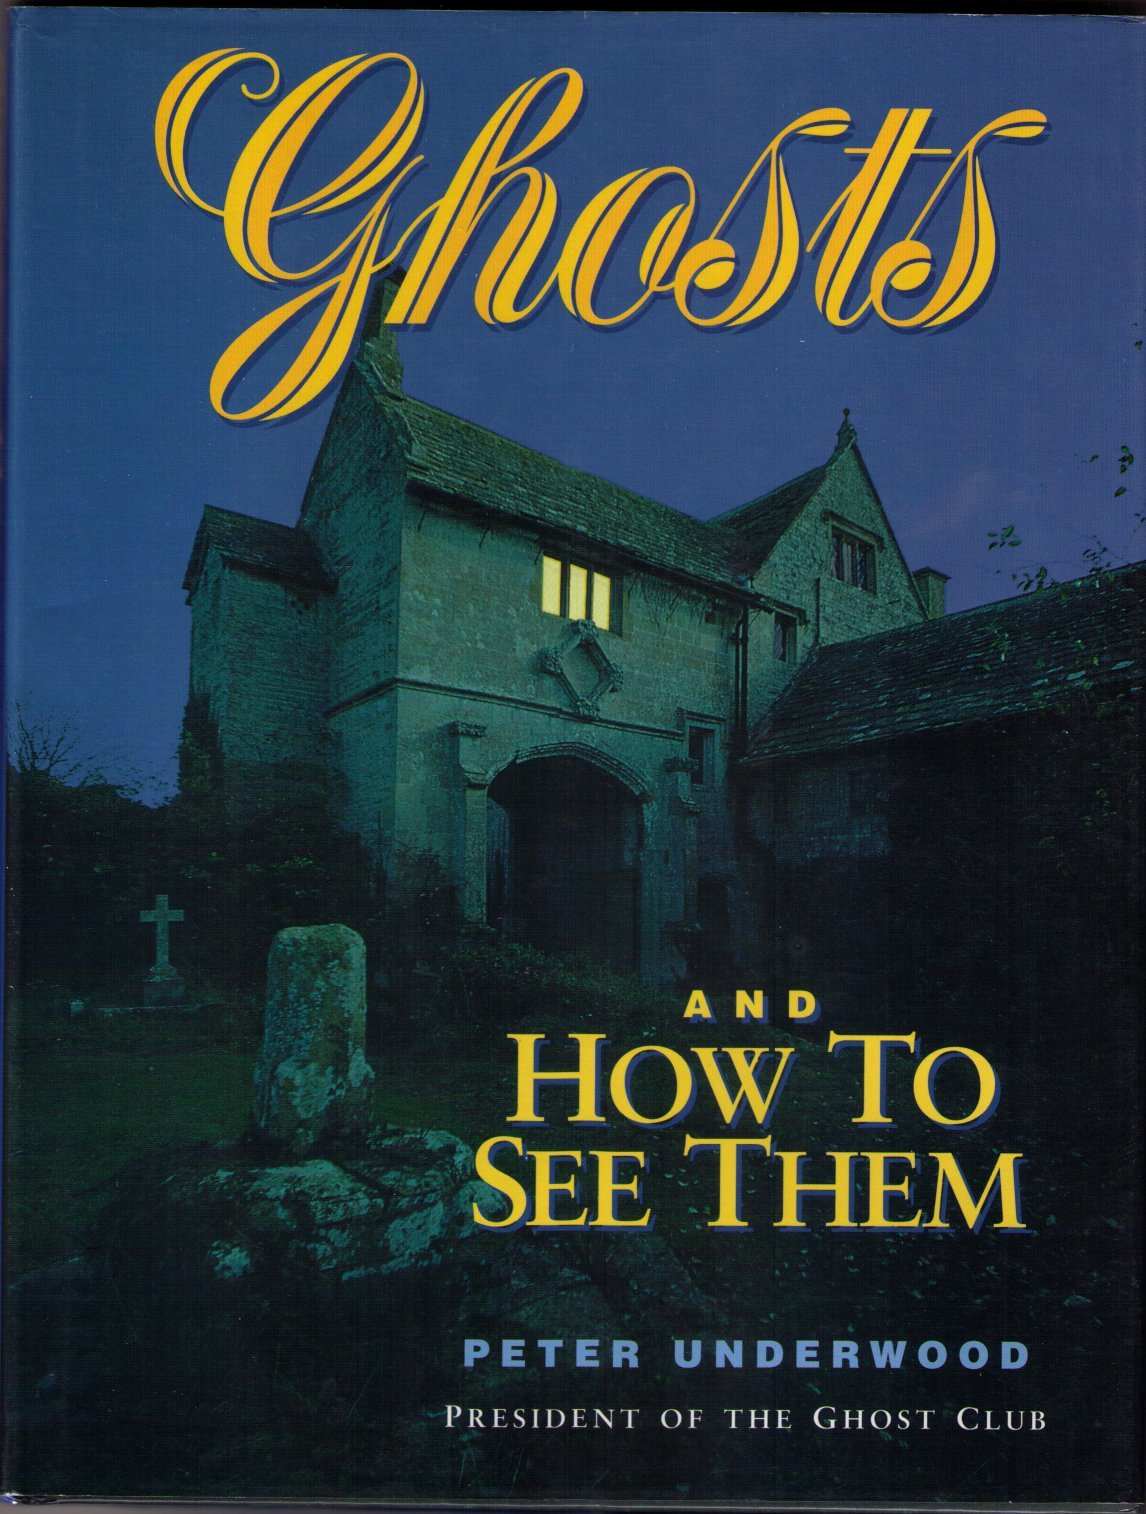 Forum on this topic: How to See Ghosts, how-to-see-ghosts/